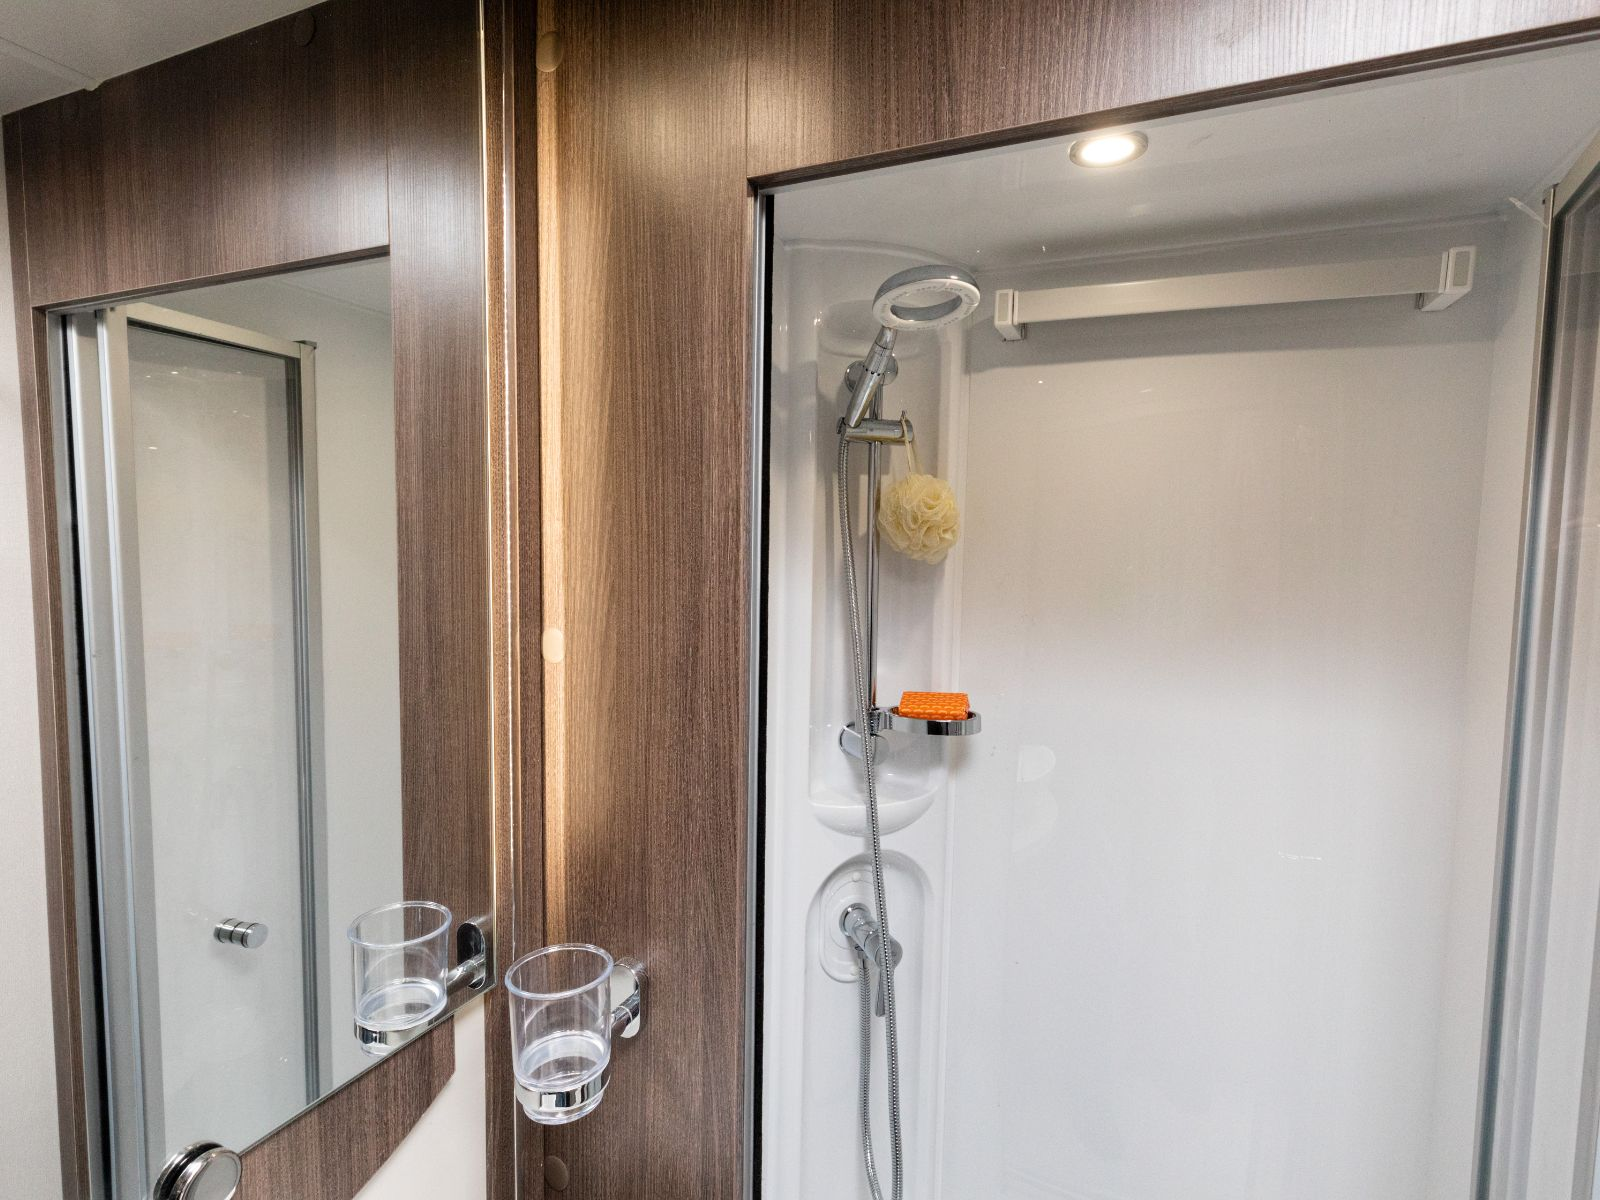 Bathroom shower layout with sliding glass panel doors'